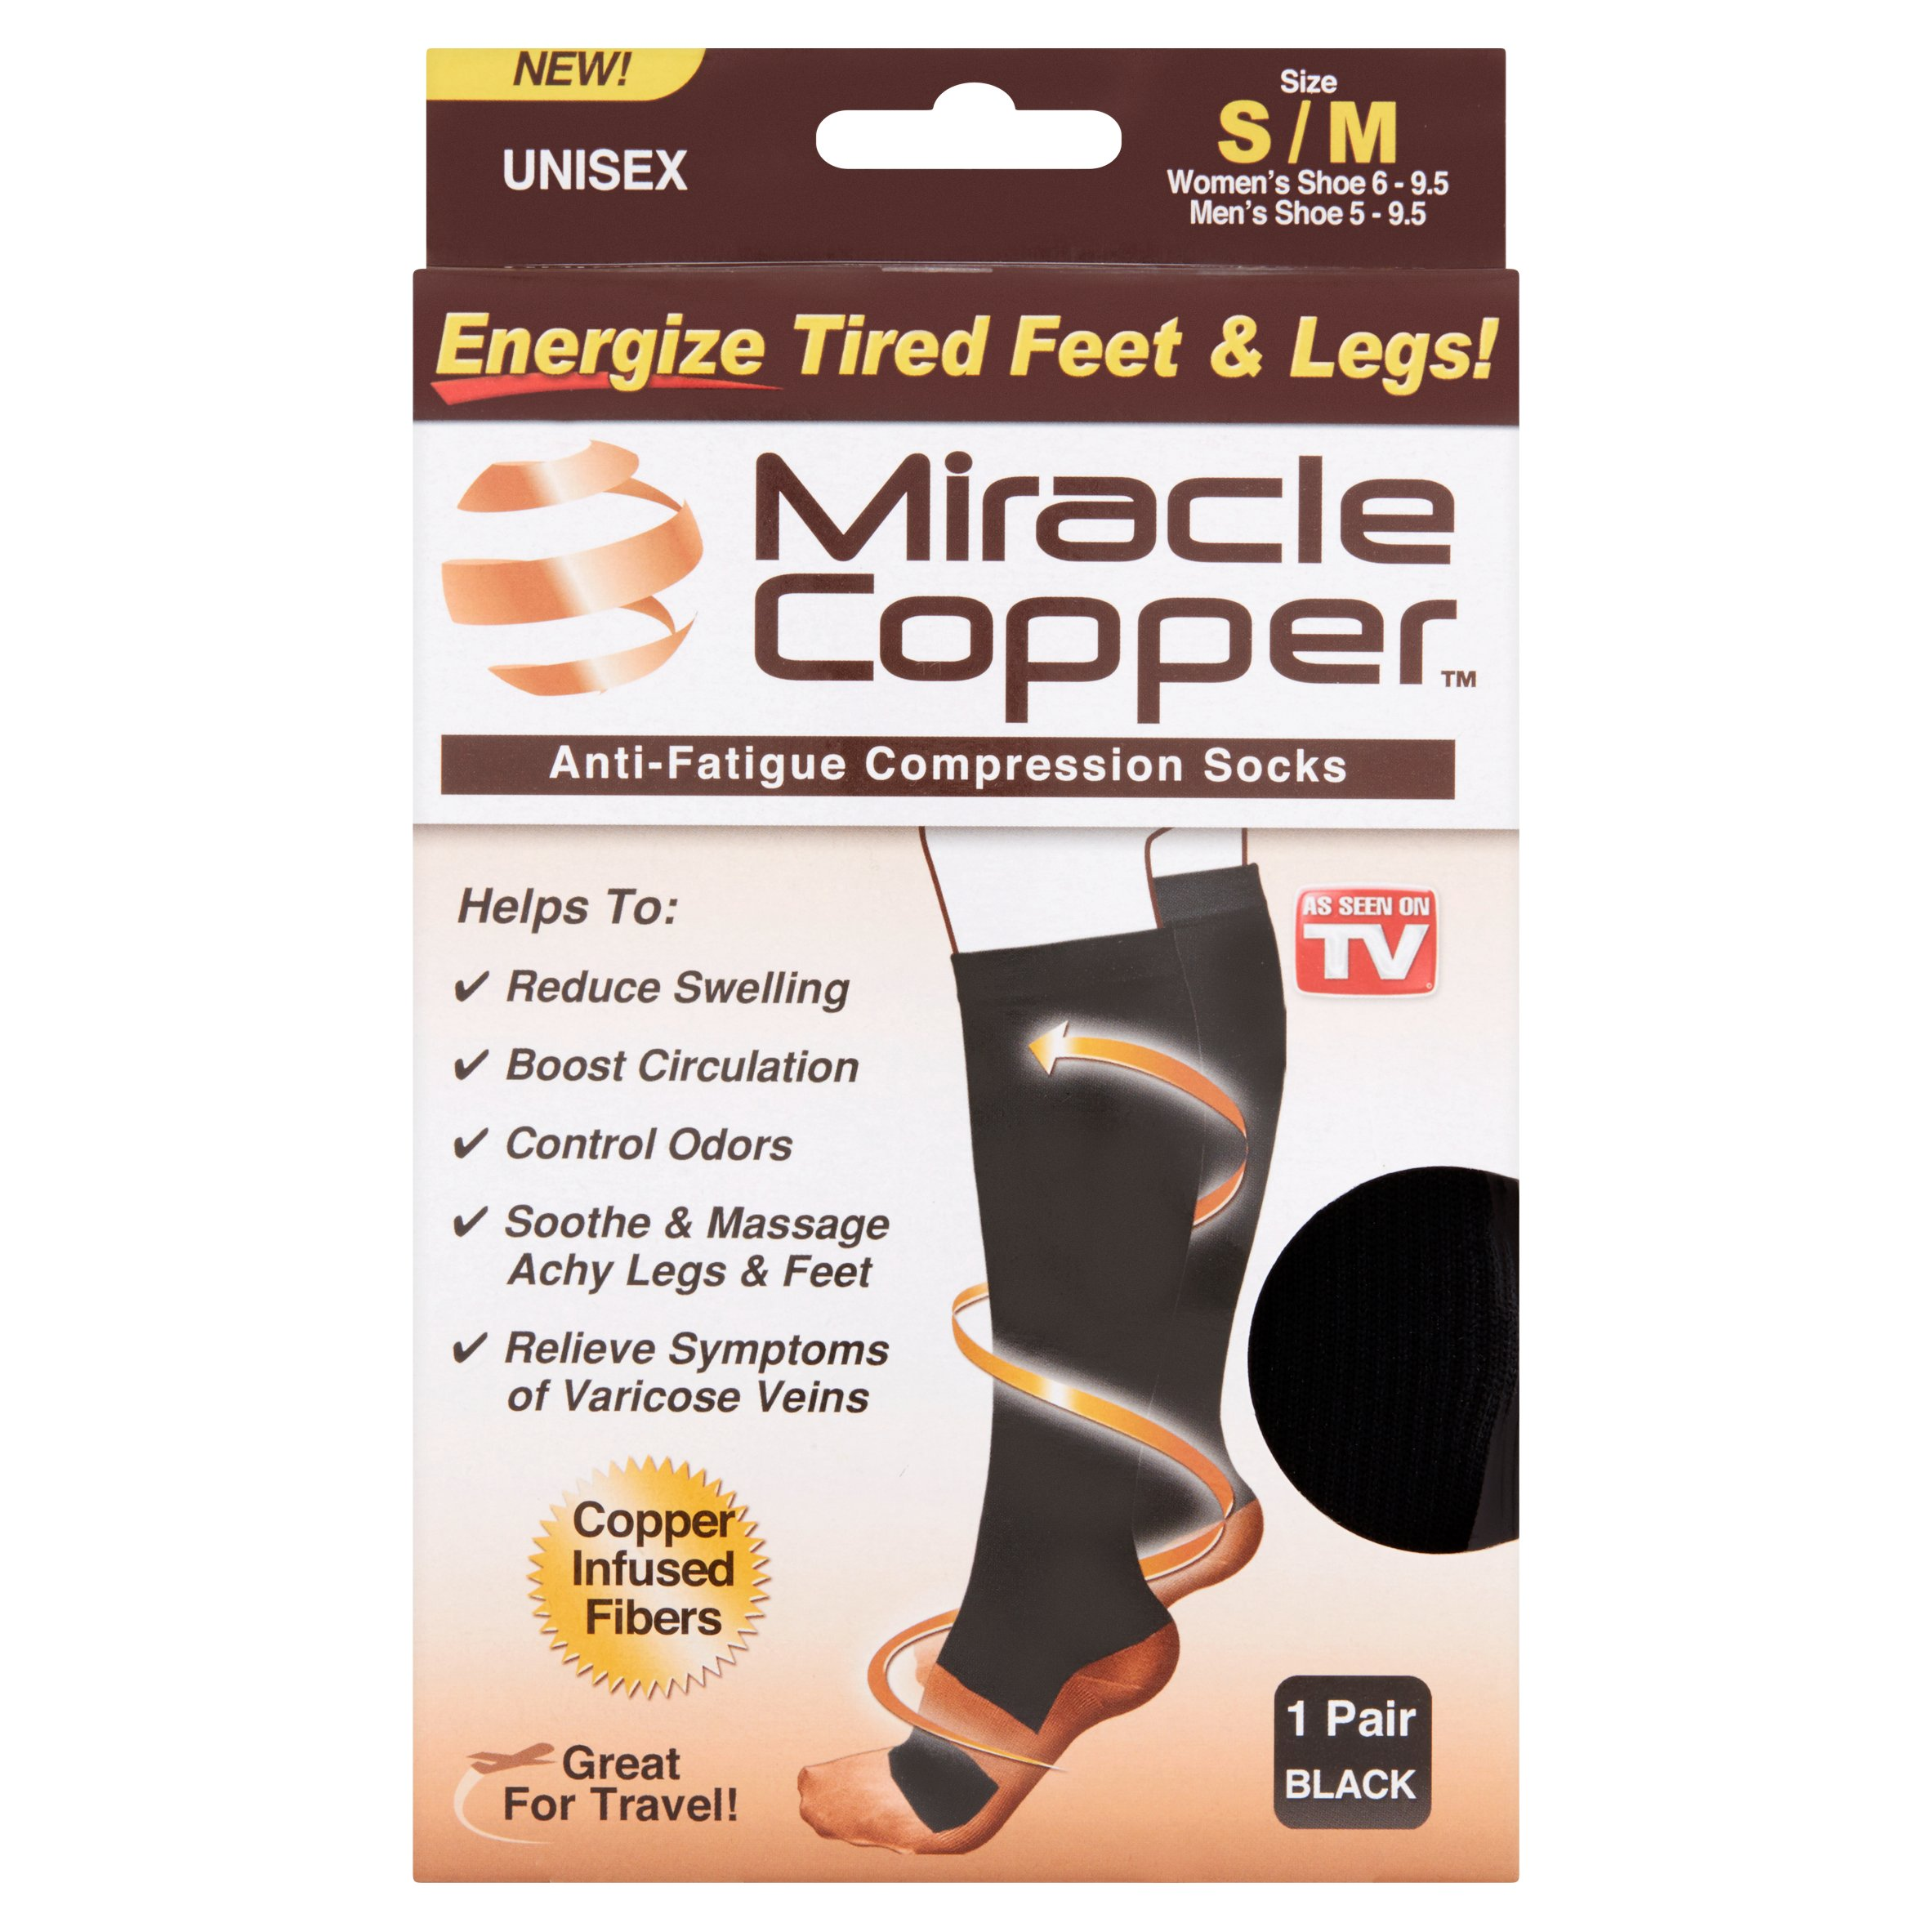 Miracle Copper Unisex Anti-Fatigue Compression Socks, S/M